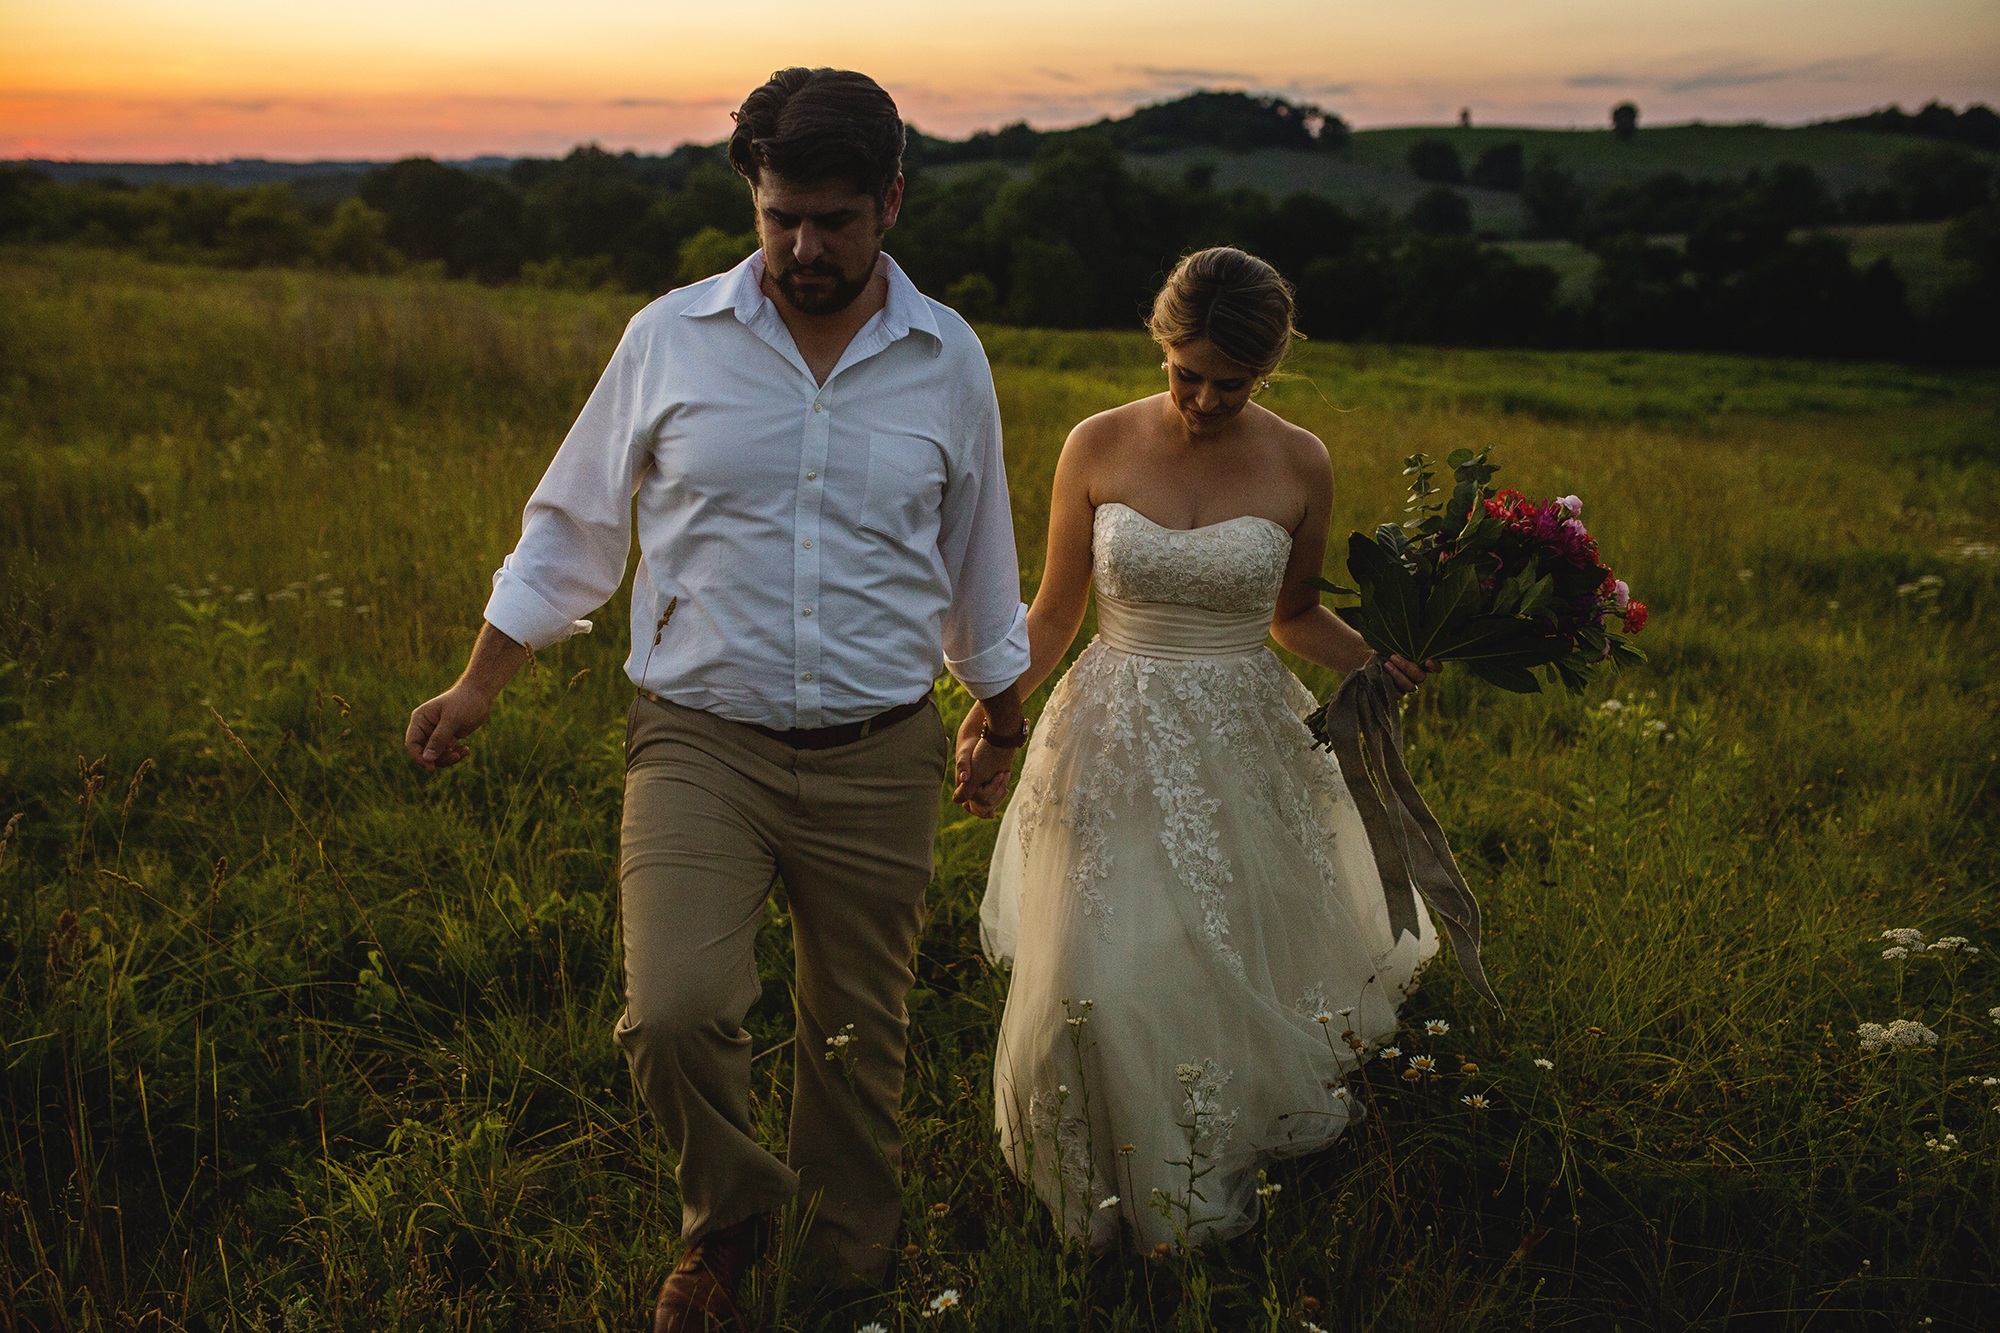 Seriously_Sabrina_Photography_Lexington_Kentucky_Romantic_Shakertown_Wedding_Portraits_Mazzetti42.jpg